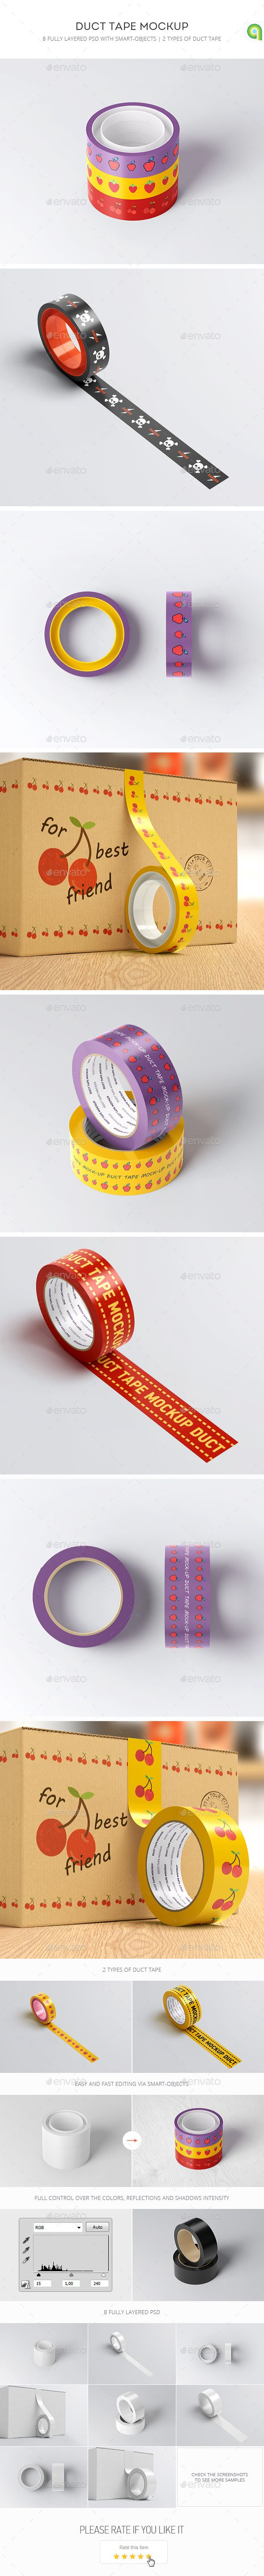 Duct Tape Mock Up Duct Tape Mockup Stationery Printing